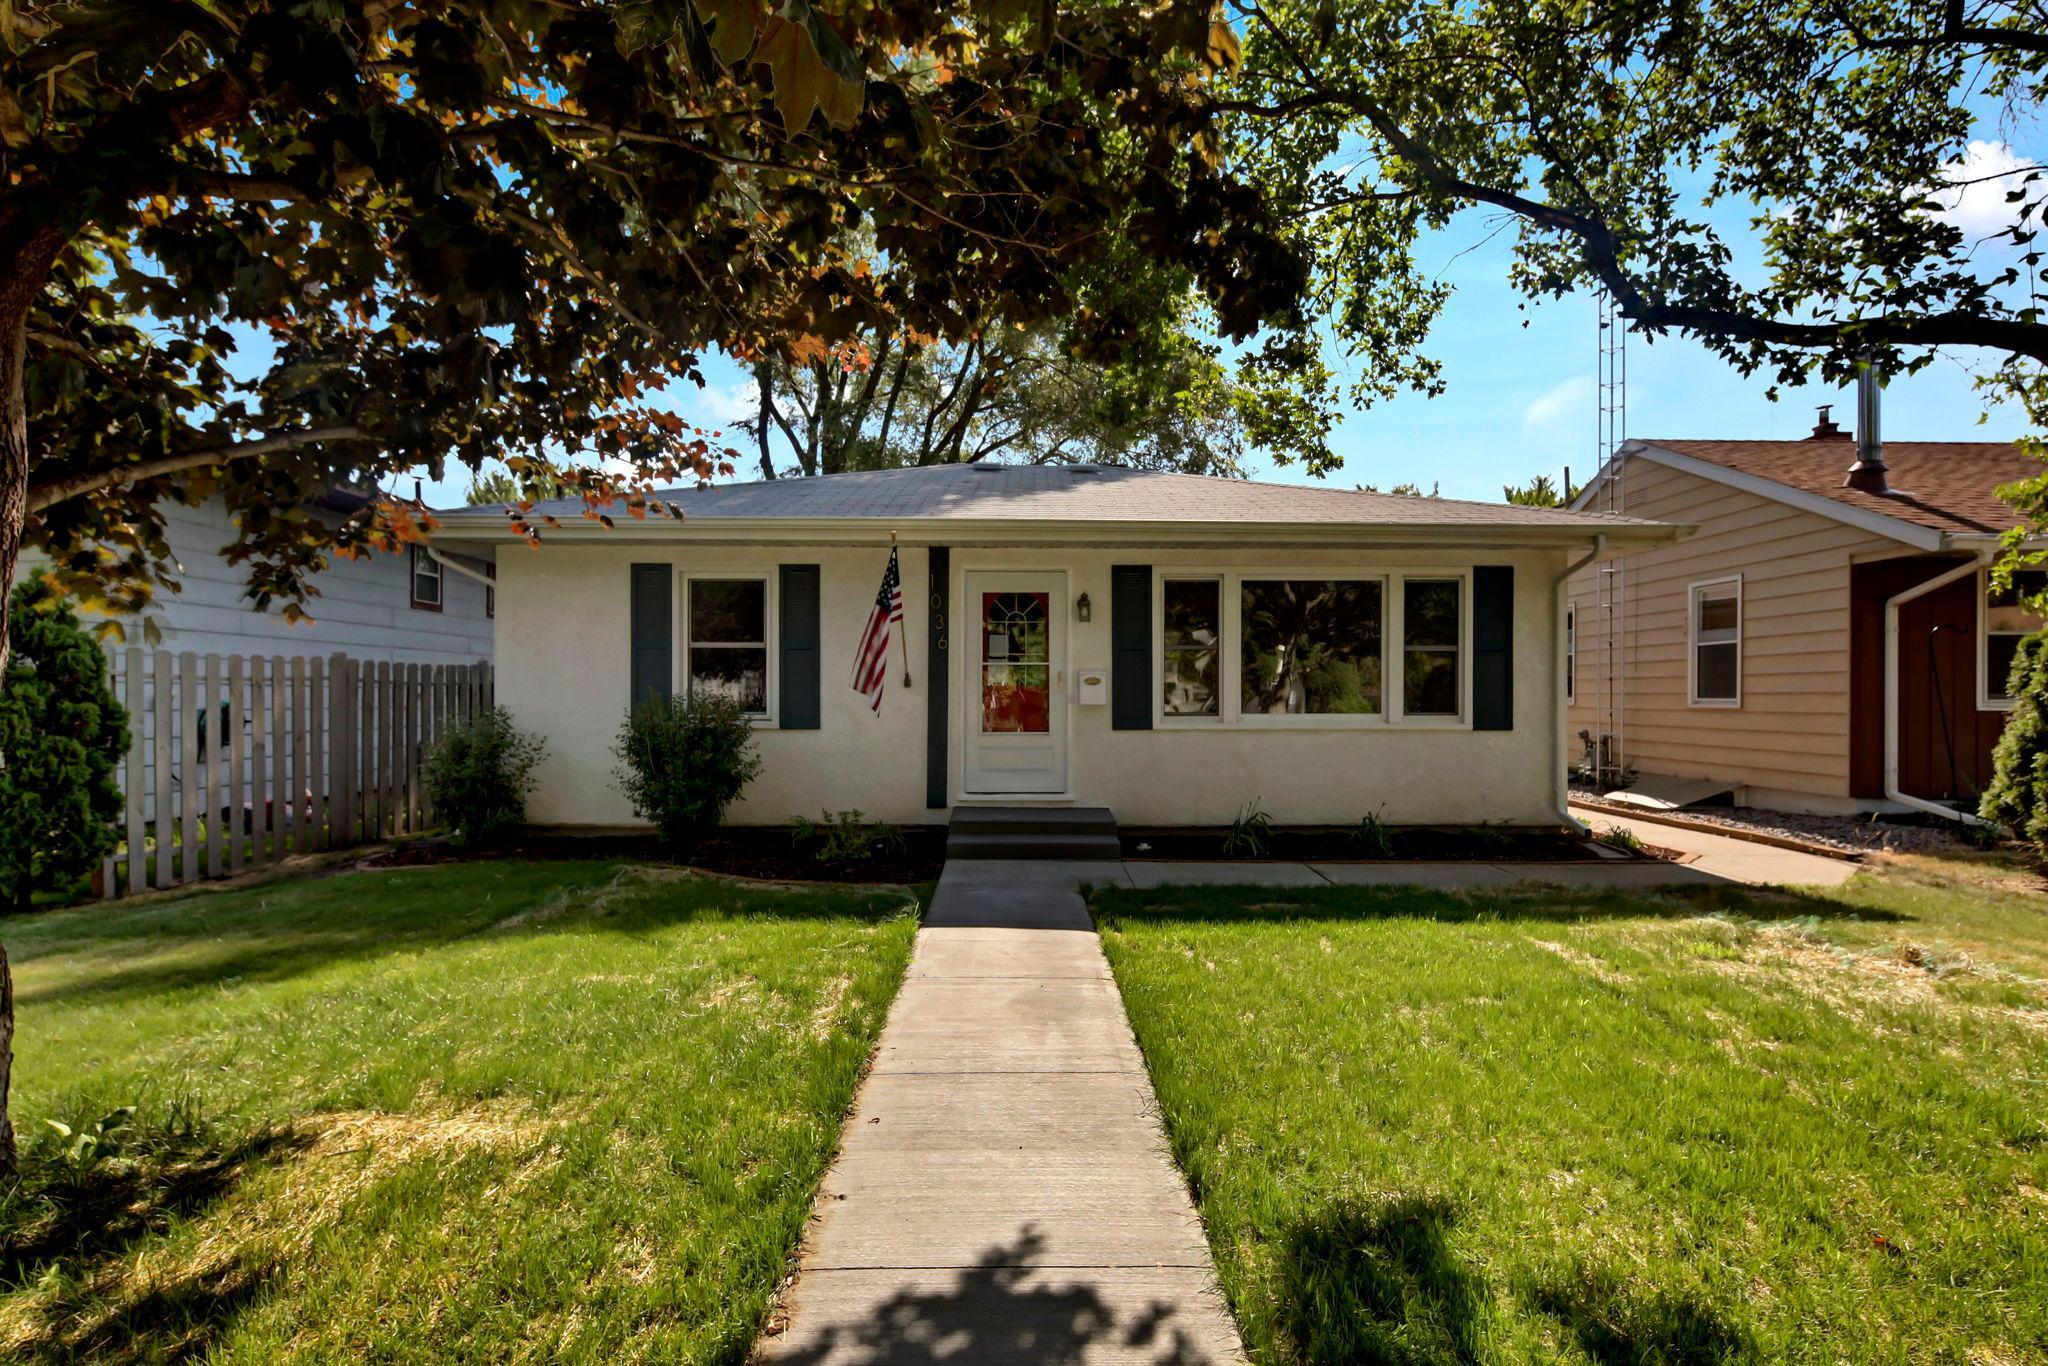 Completely renovated 4 BR, 2 BA home.  No part of this home was left untouched.  All new main floor bath fixtures, new flooring and carpet, and much more.  Heated and insulated garage with plenty of power, workbench and shelving.